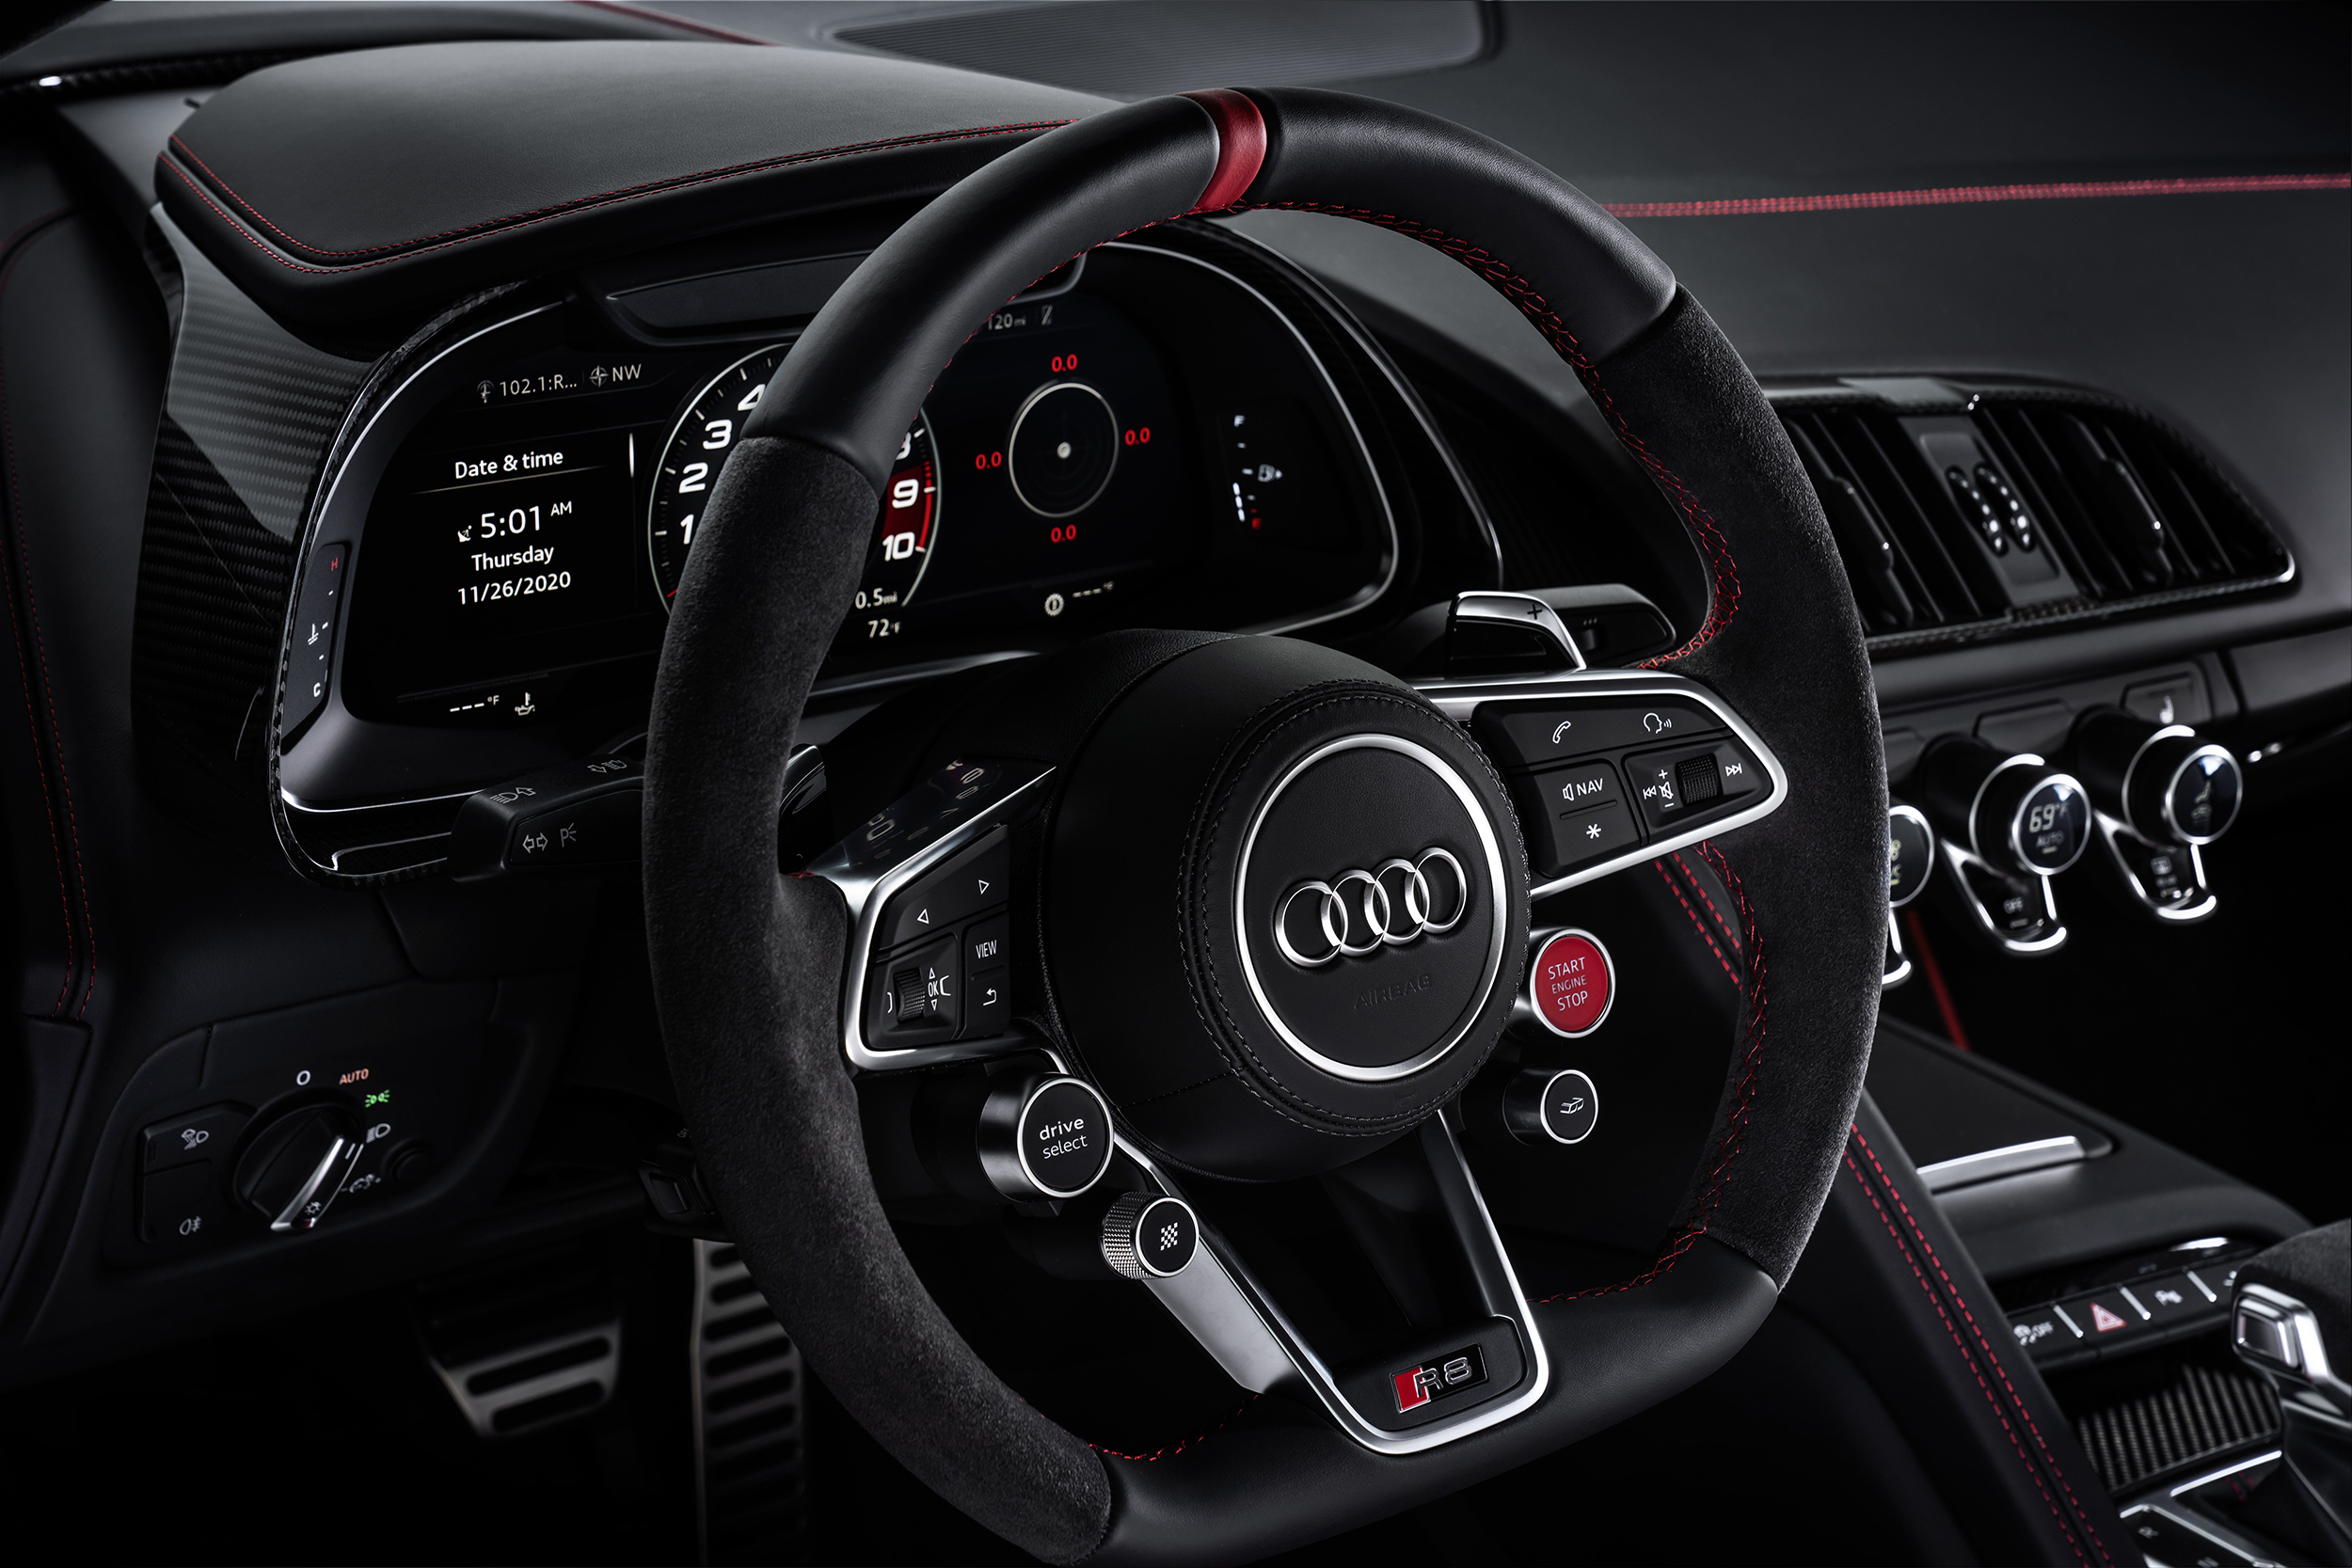 2021 Audi R8 Panther Edition steering wheel